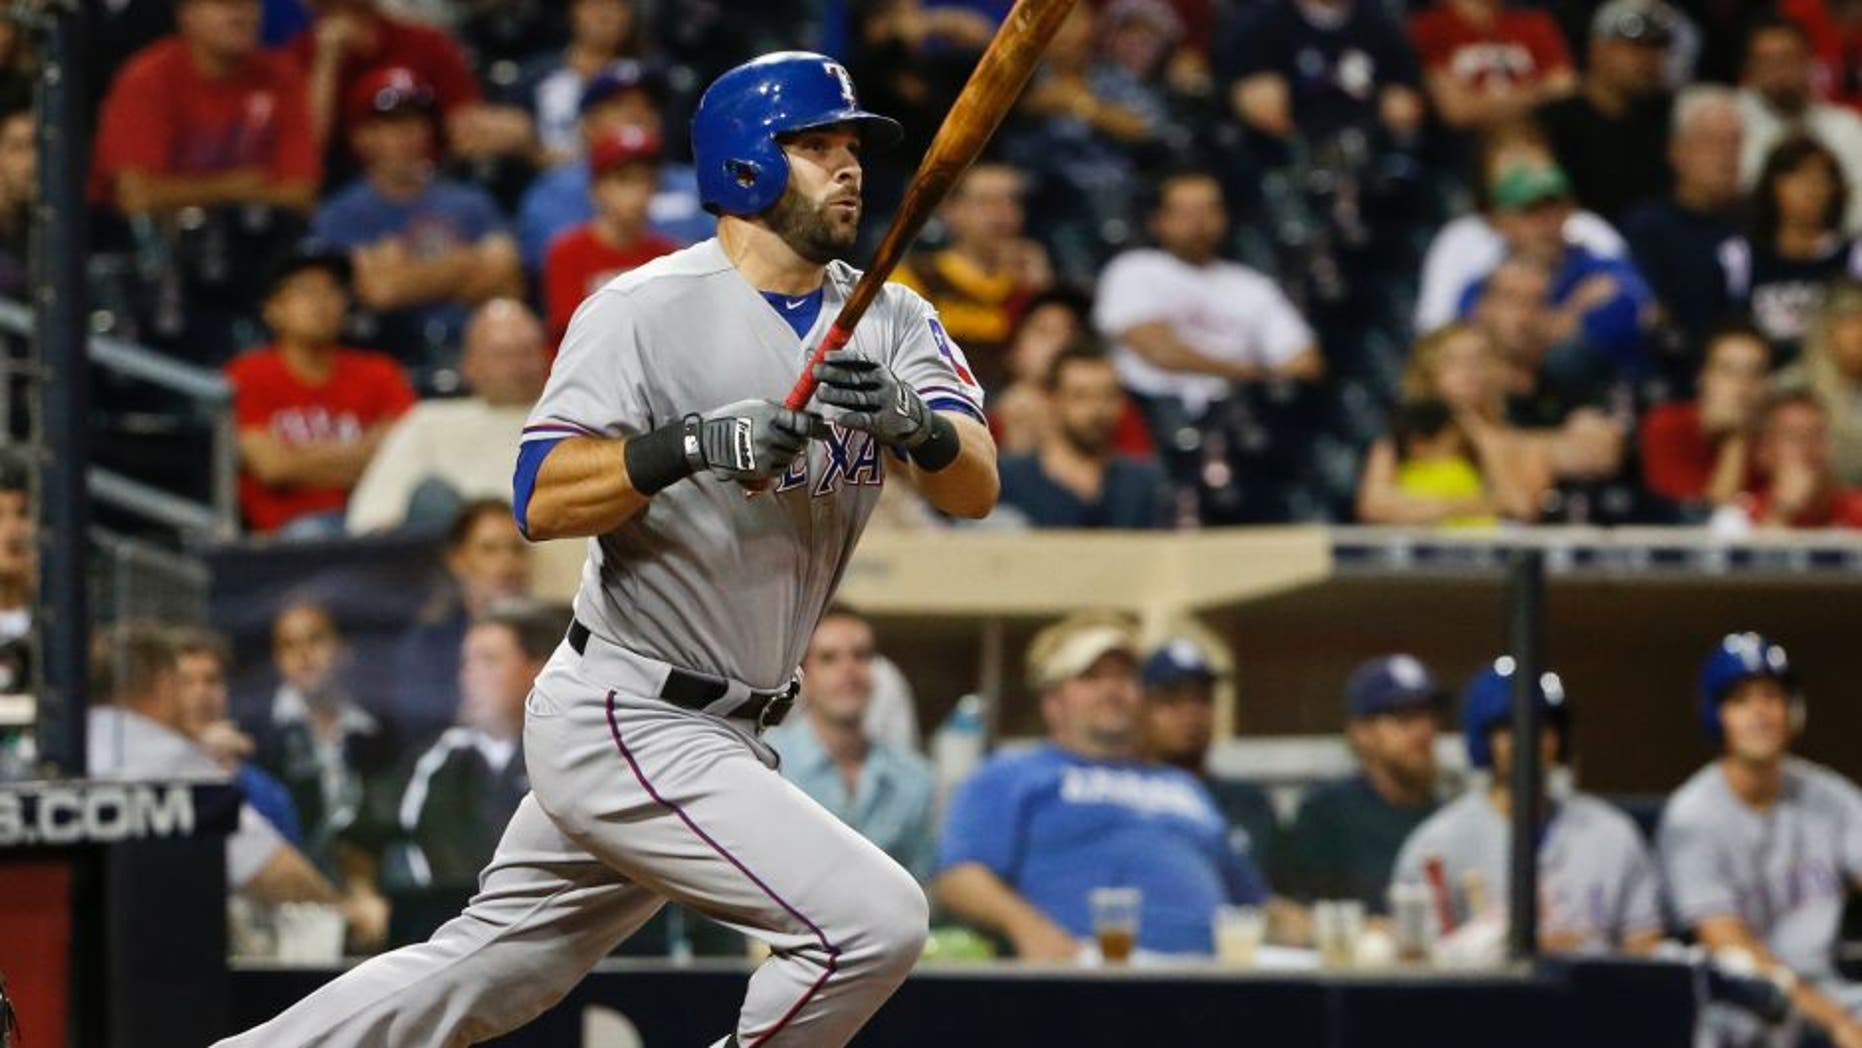 Texas Rangers' Mitch Moreland watches his run producing double just stay fair down the right field line in the tenth inning of a baseball game against the San Diego Padres Wednesday, Sept. 2, 2015, in San Diego. (AP Photo/Lenny Ignelzi)